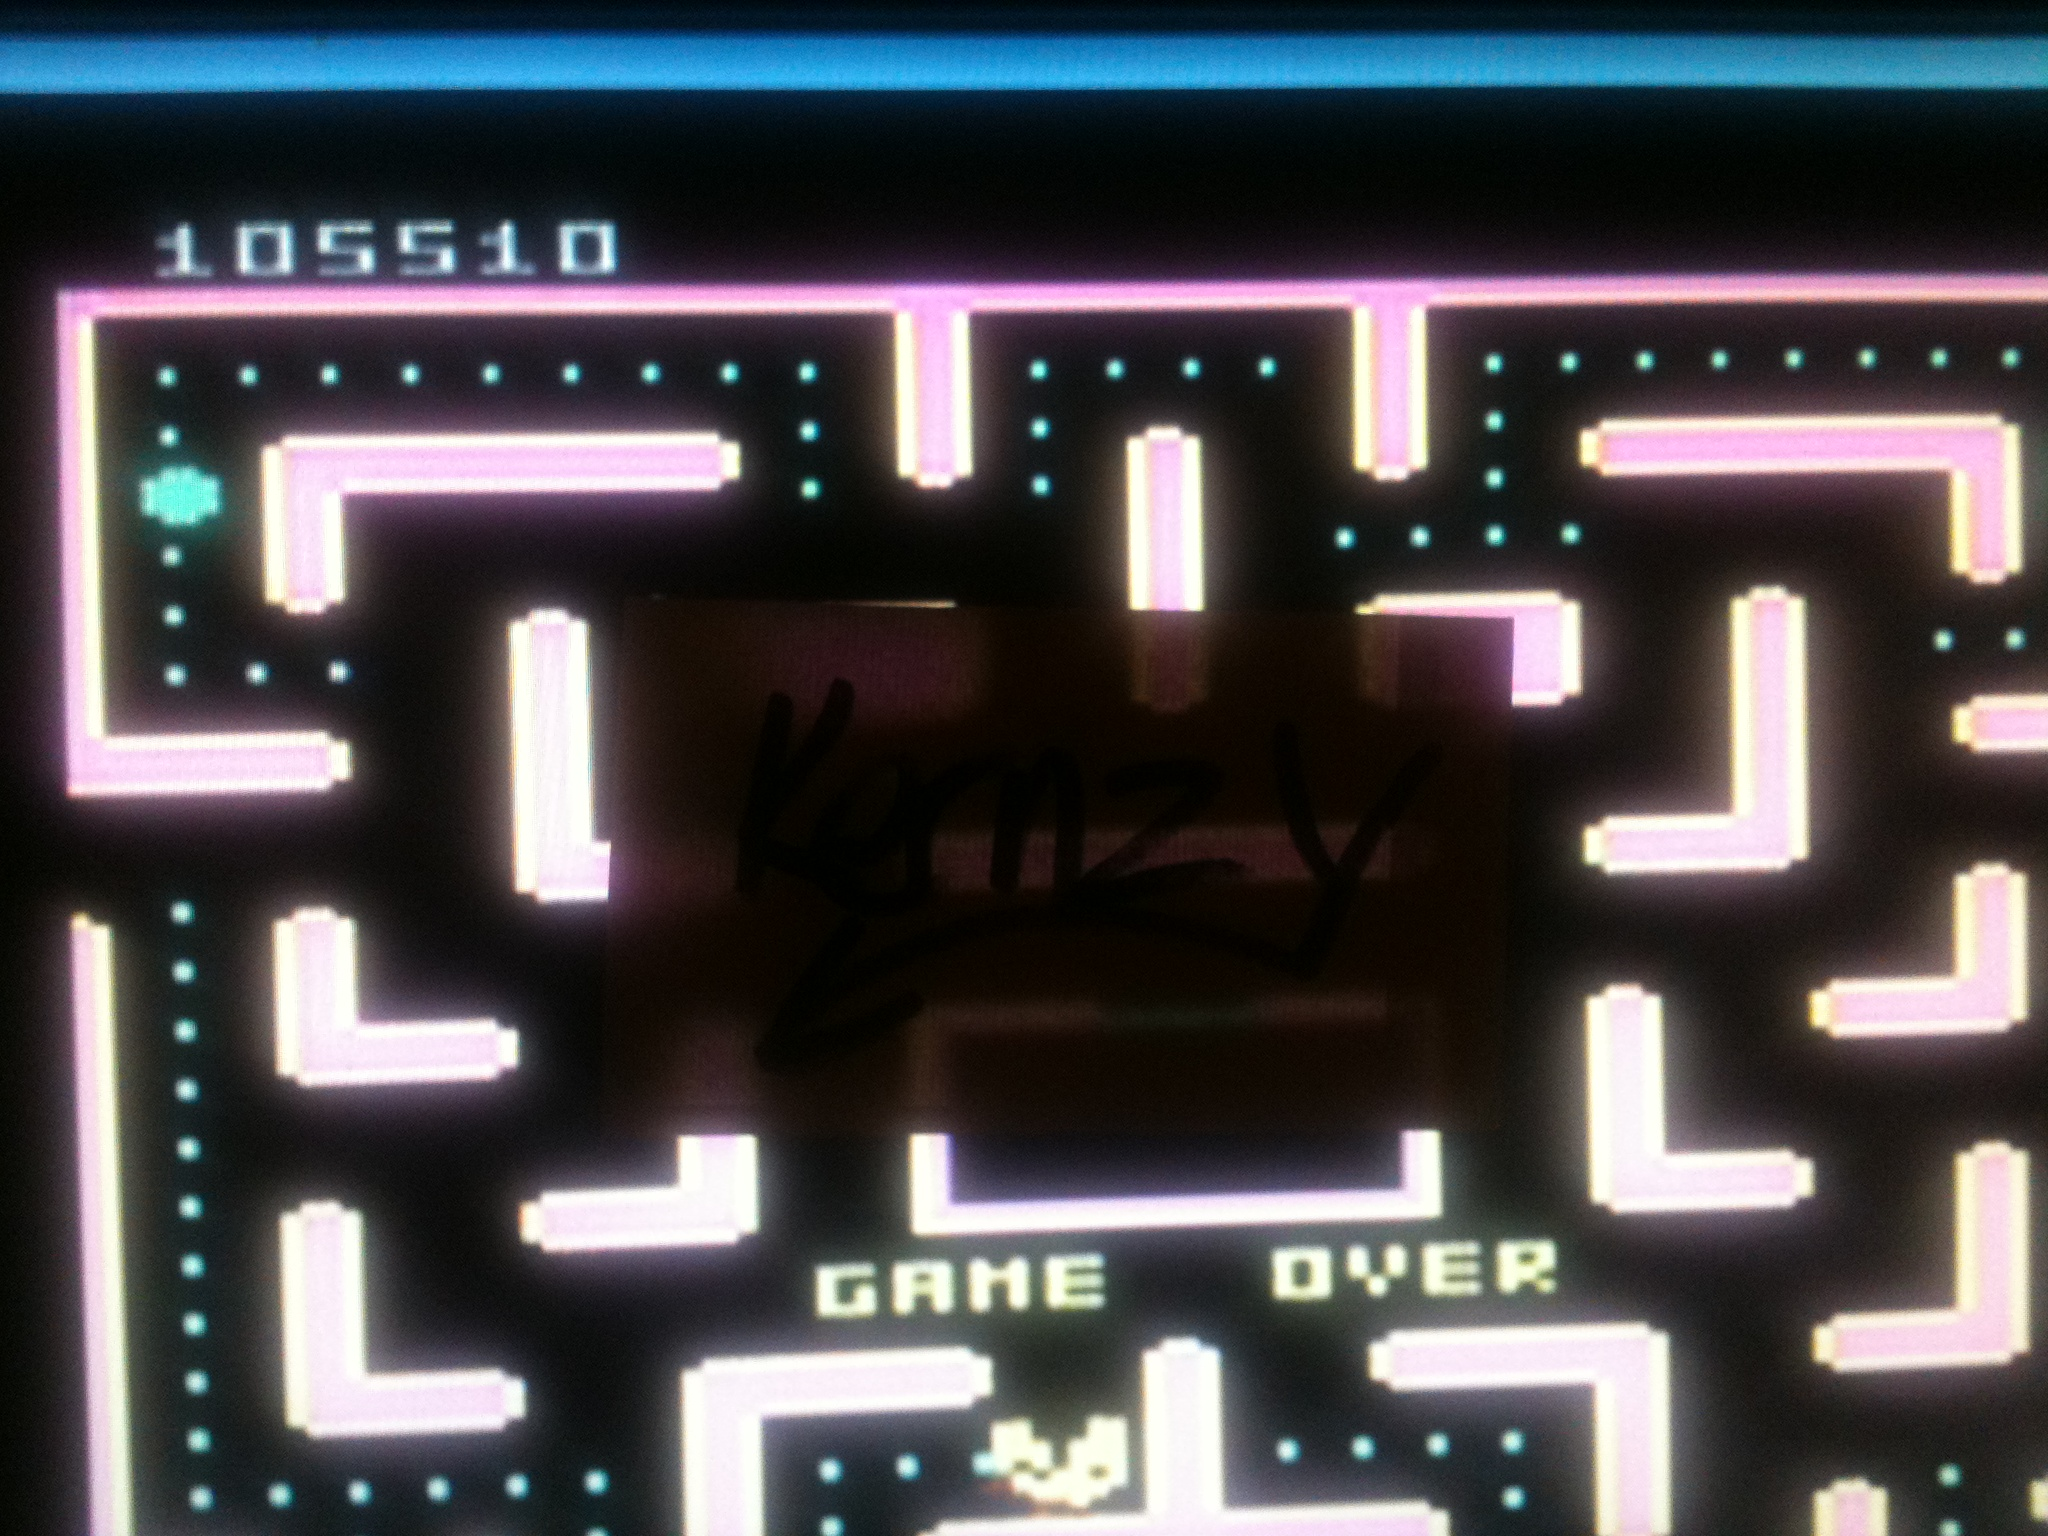 kernzy: Pac-Man Collection: Ms. Pac-Man [Apple/Plus Off/Fast Button] (Atari 7800 Emulated) 105,510 points on 2014-12-10 12:25:12